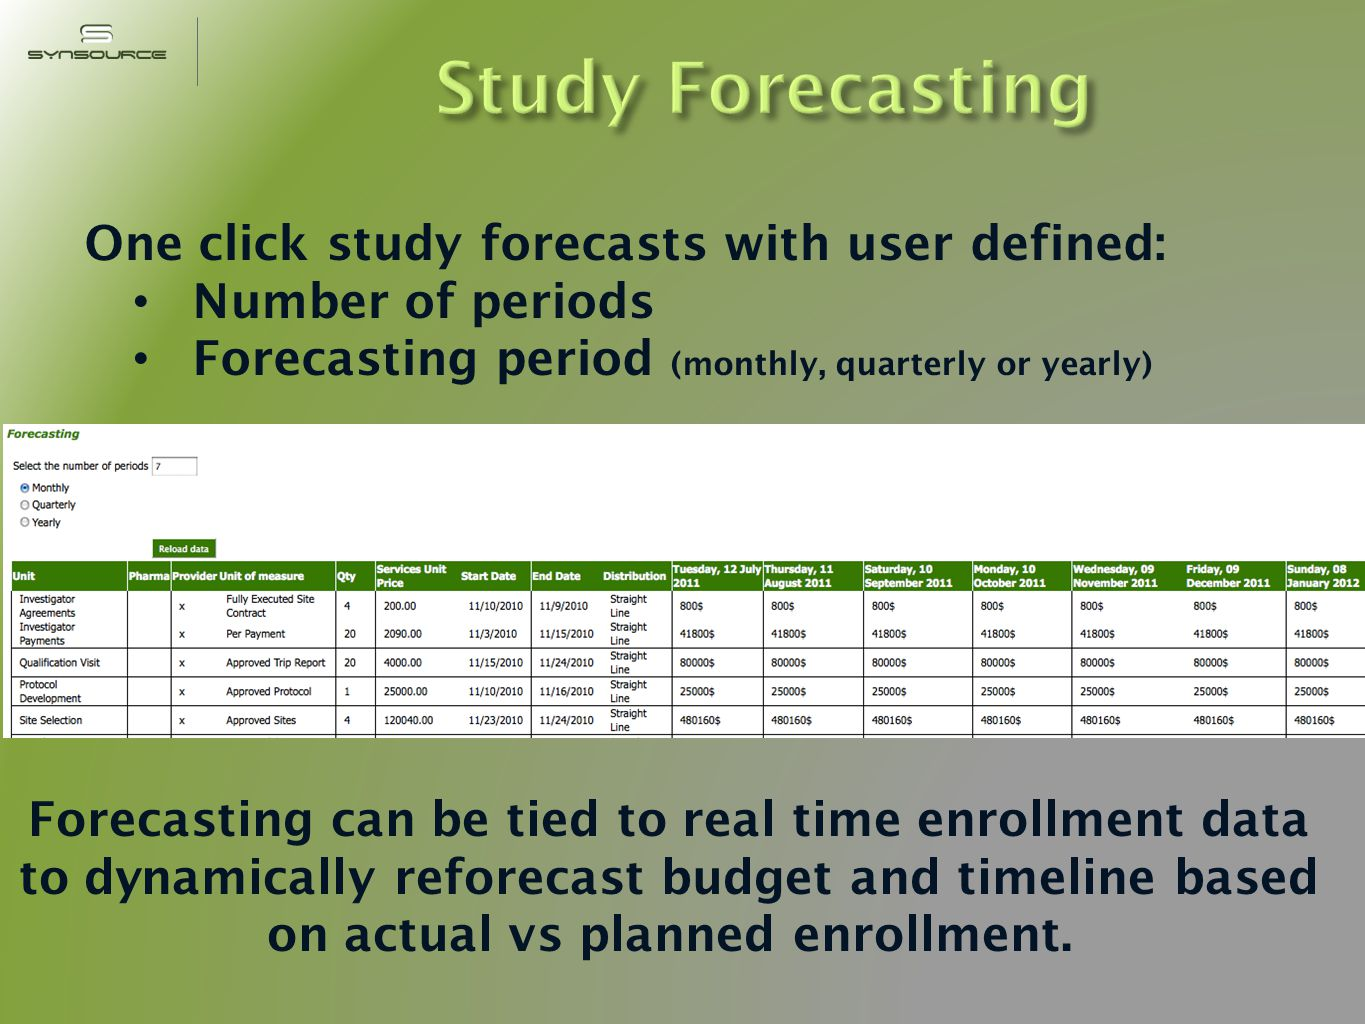 One click study forecasts with user defined: Number of periods Forecasting period (monthly, quarterly or yearly) Forecasting can be tied to real time enrollment data to dynamically reforecast budget and timeline based on actual vs planned enrollment.